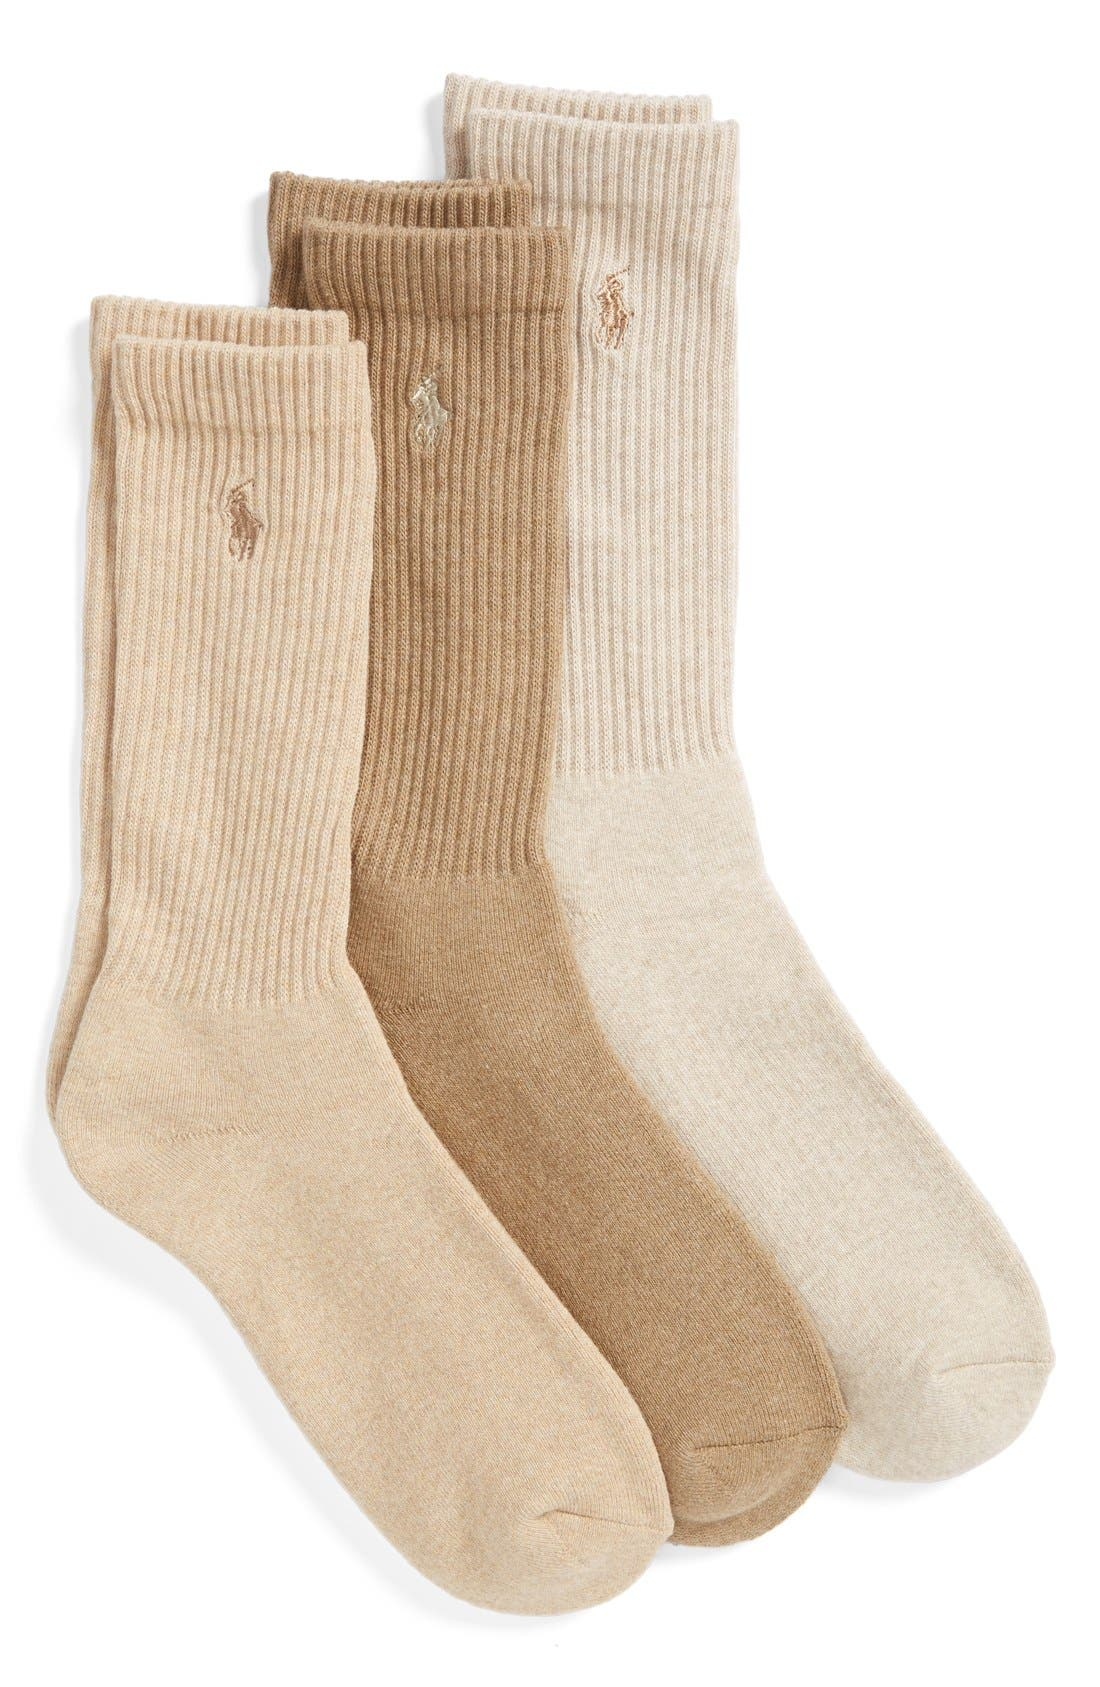 3-Pack Crew Socks,                             Main thumbnail 1, color,                             TAUPE/ OYSTER/ BEIGE